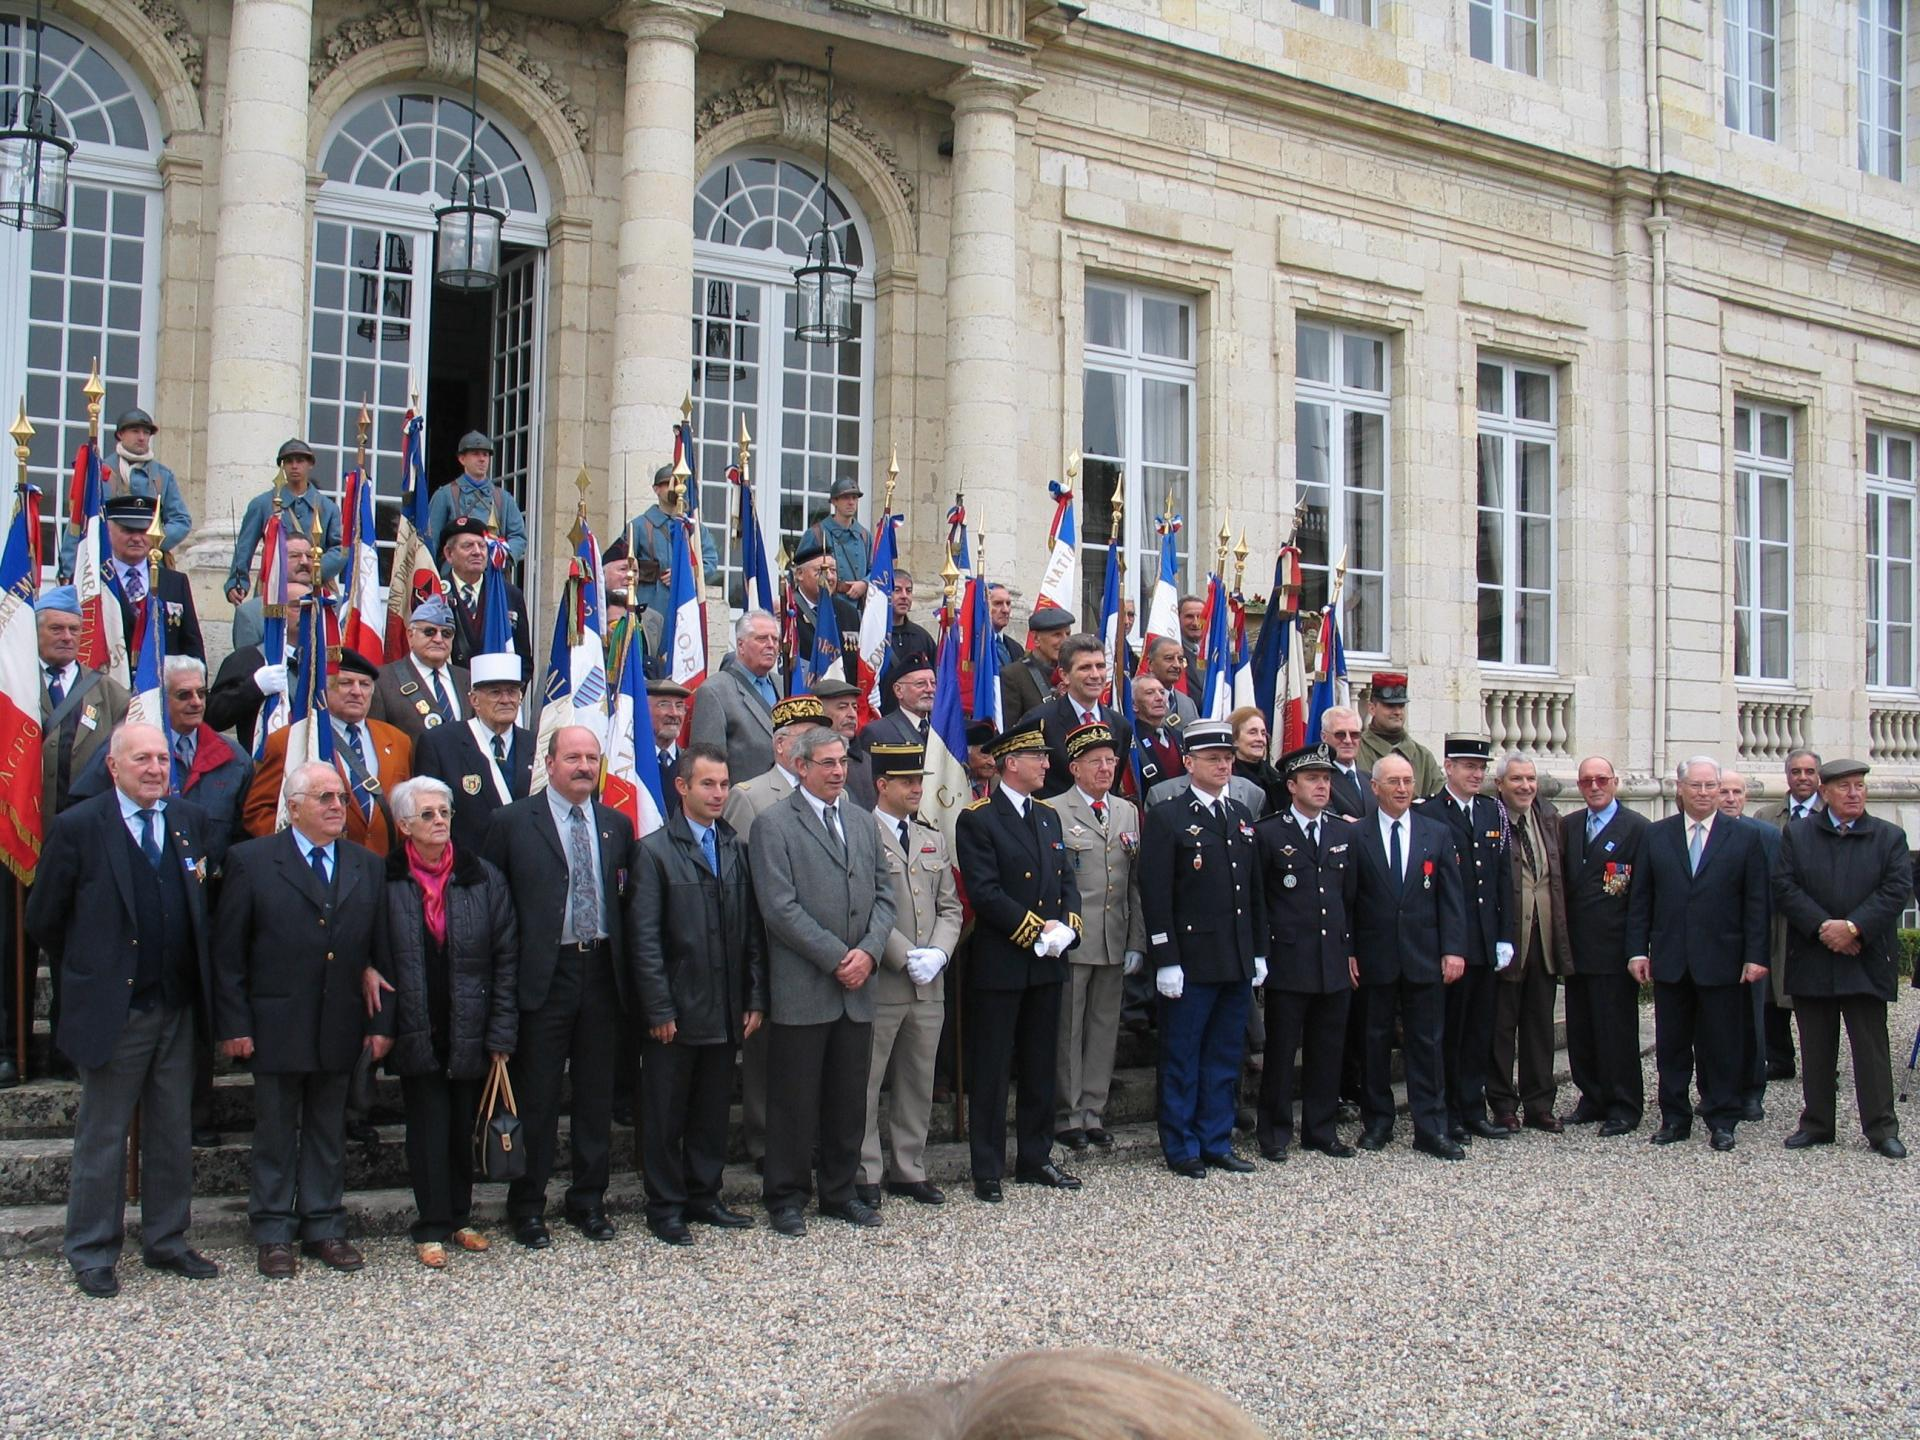 Officiels devant la prefecture